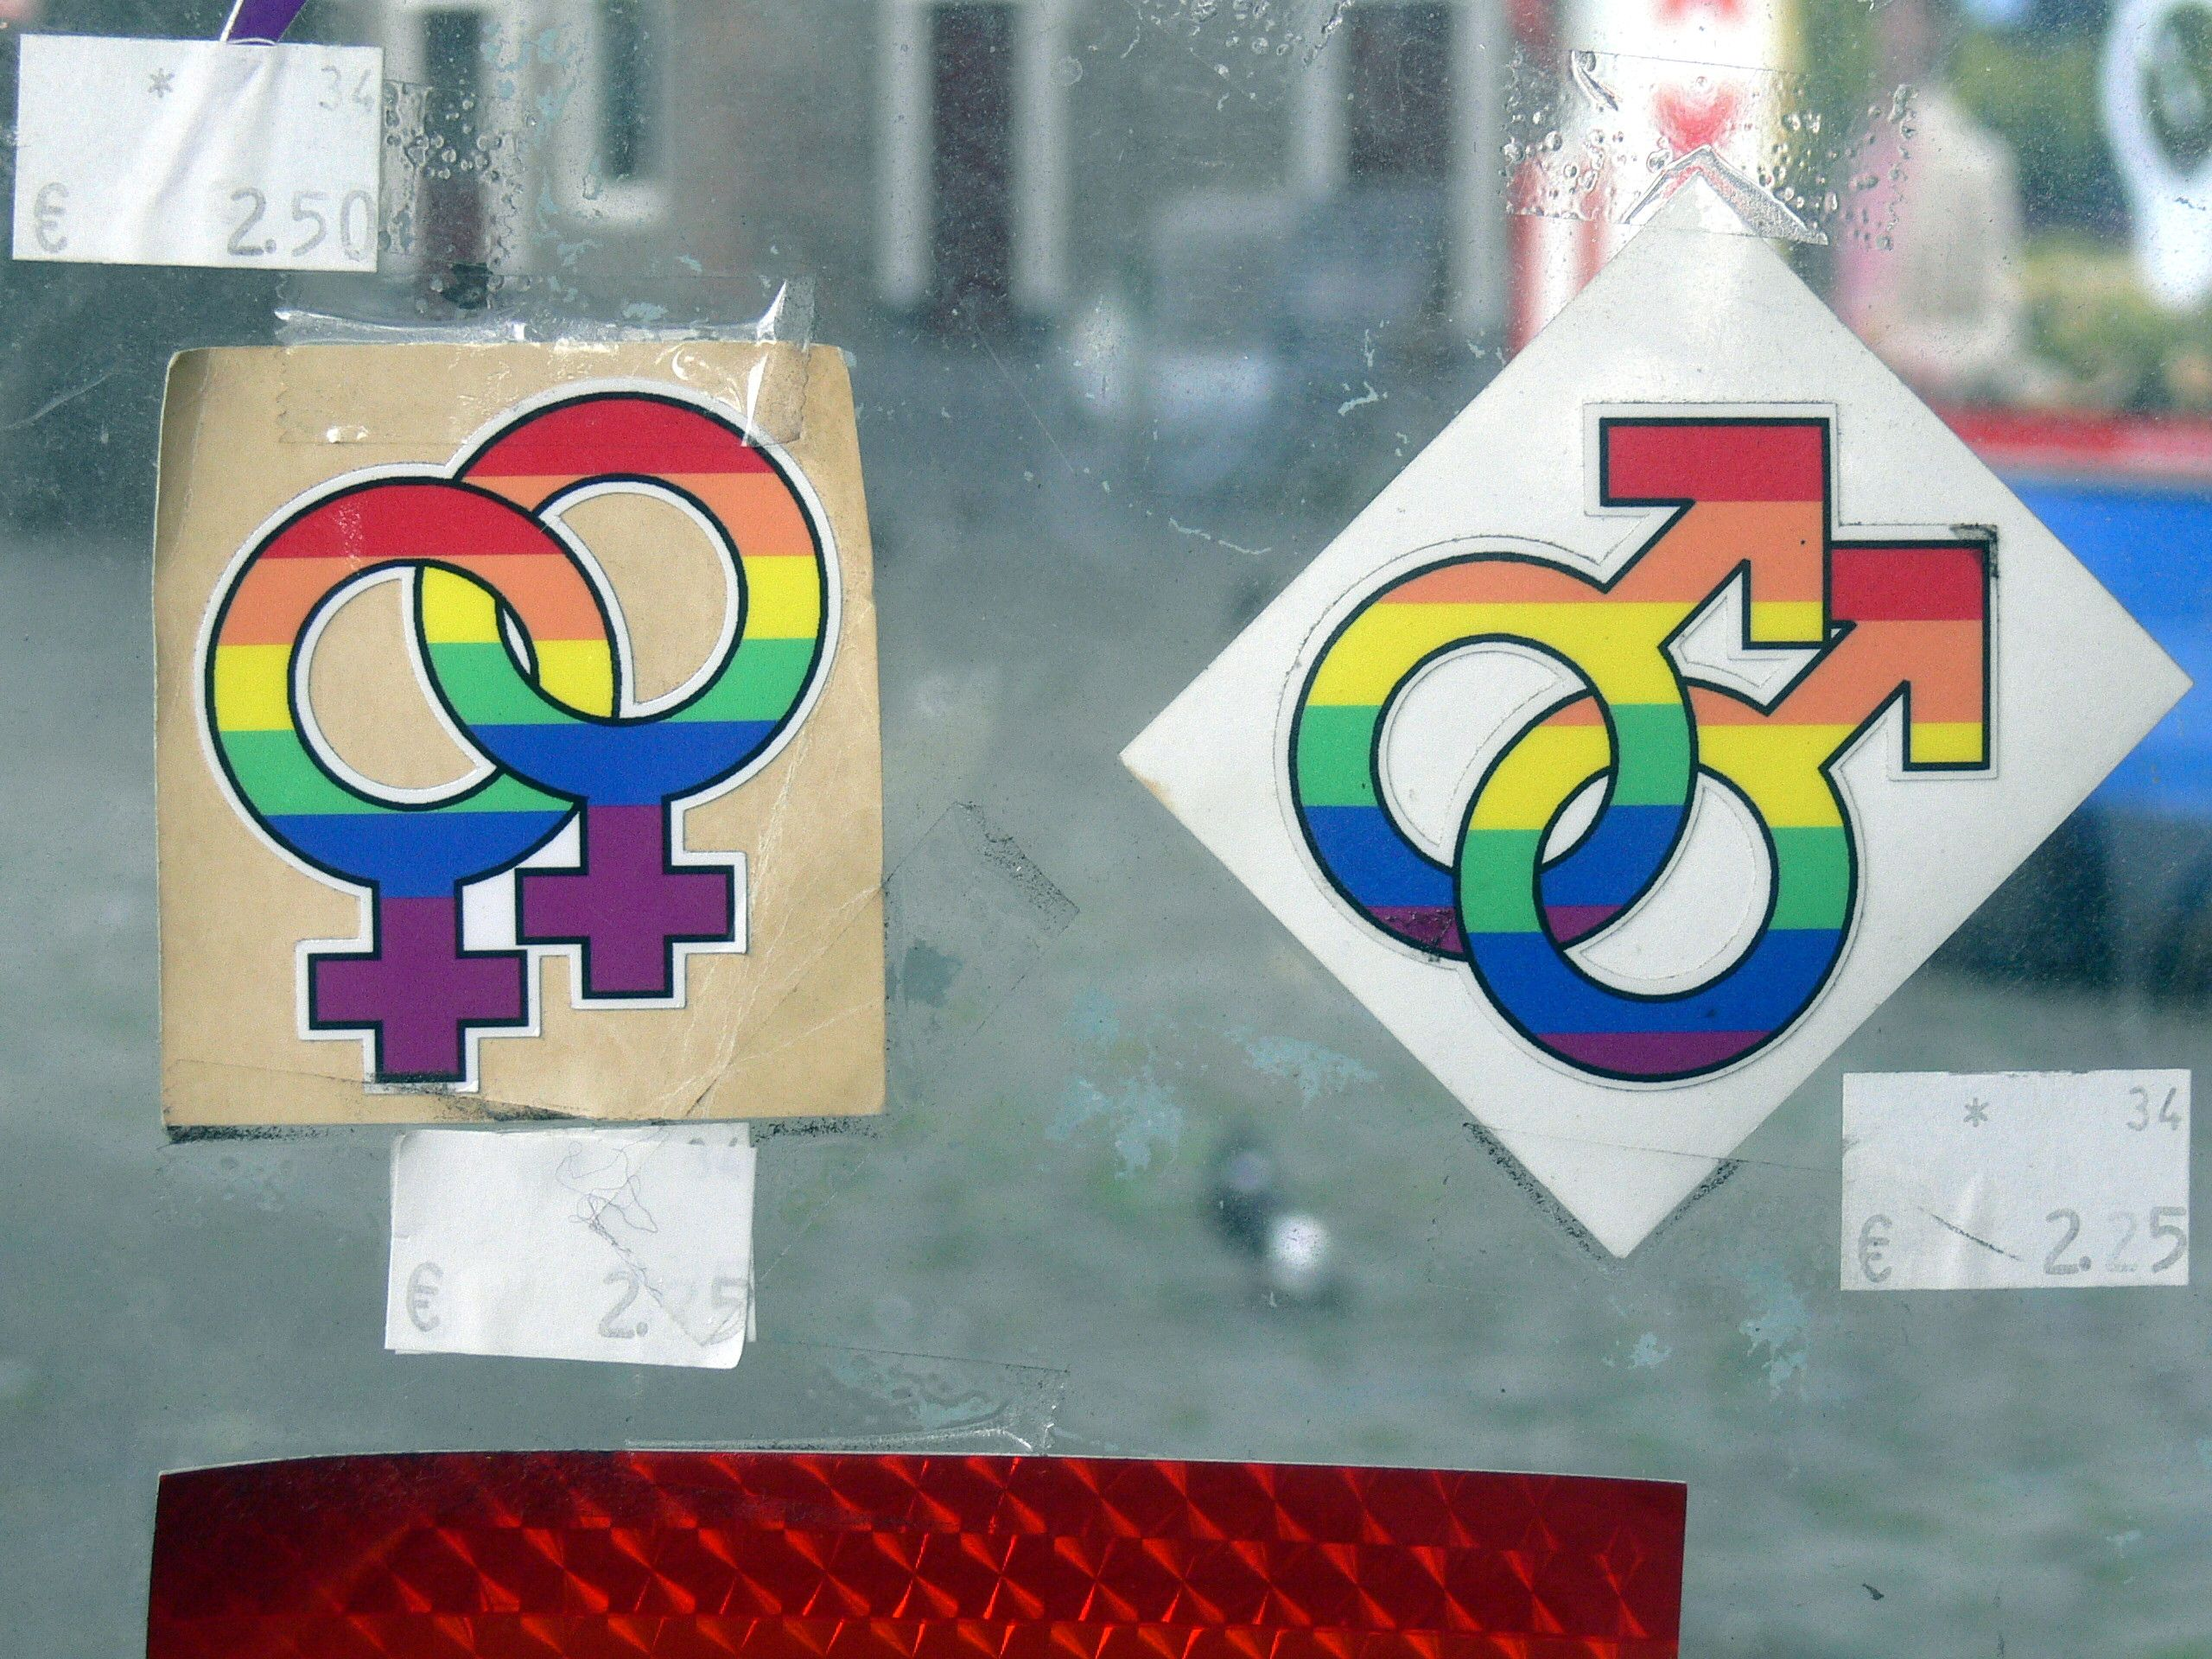 Gender symbols modifications of the classical gender symbol gender symbols modifications of the classical gender symbol based on astrological symbols buycottarizona